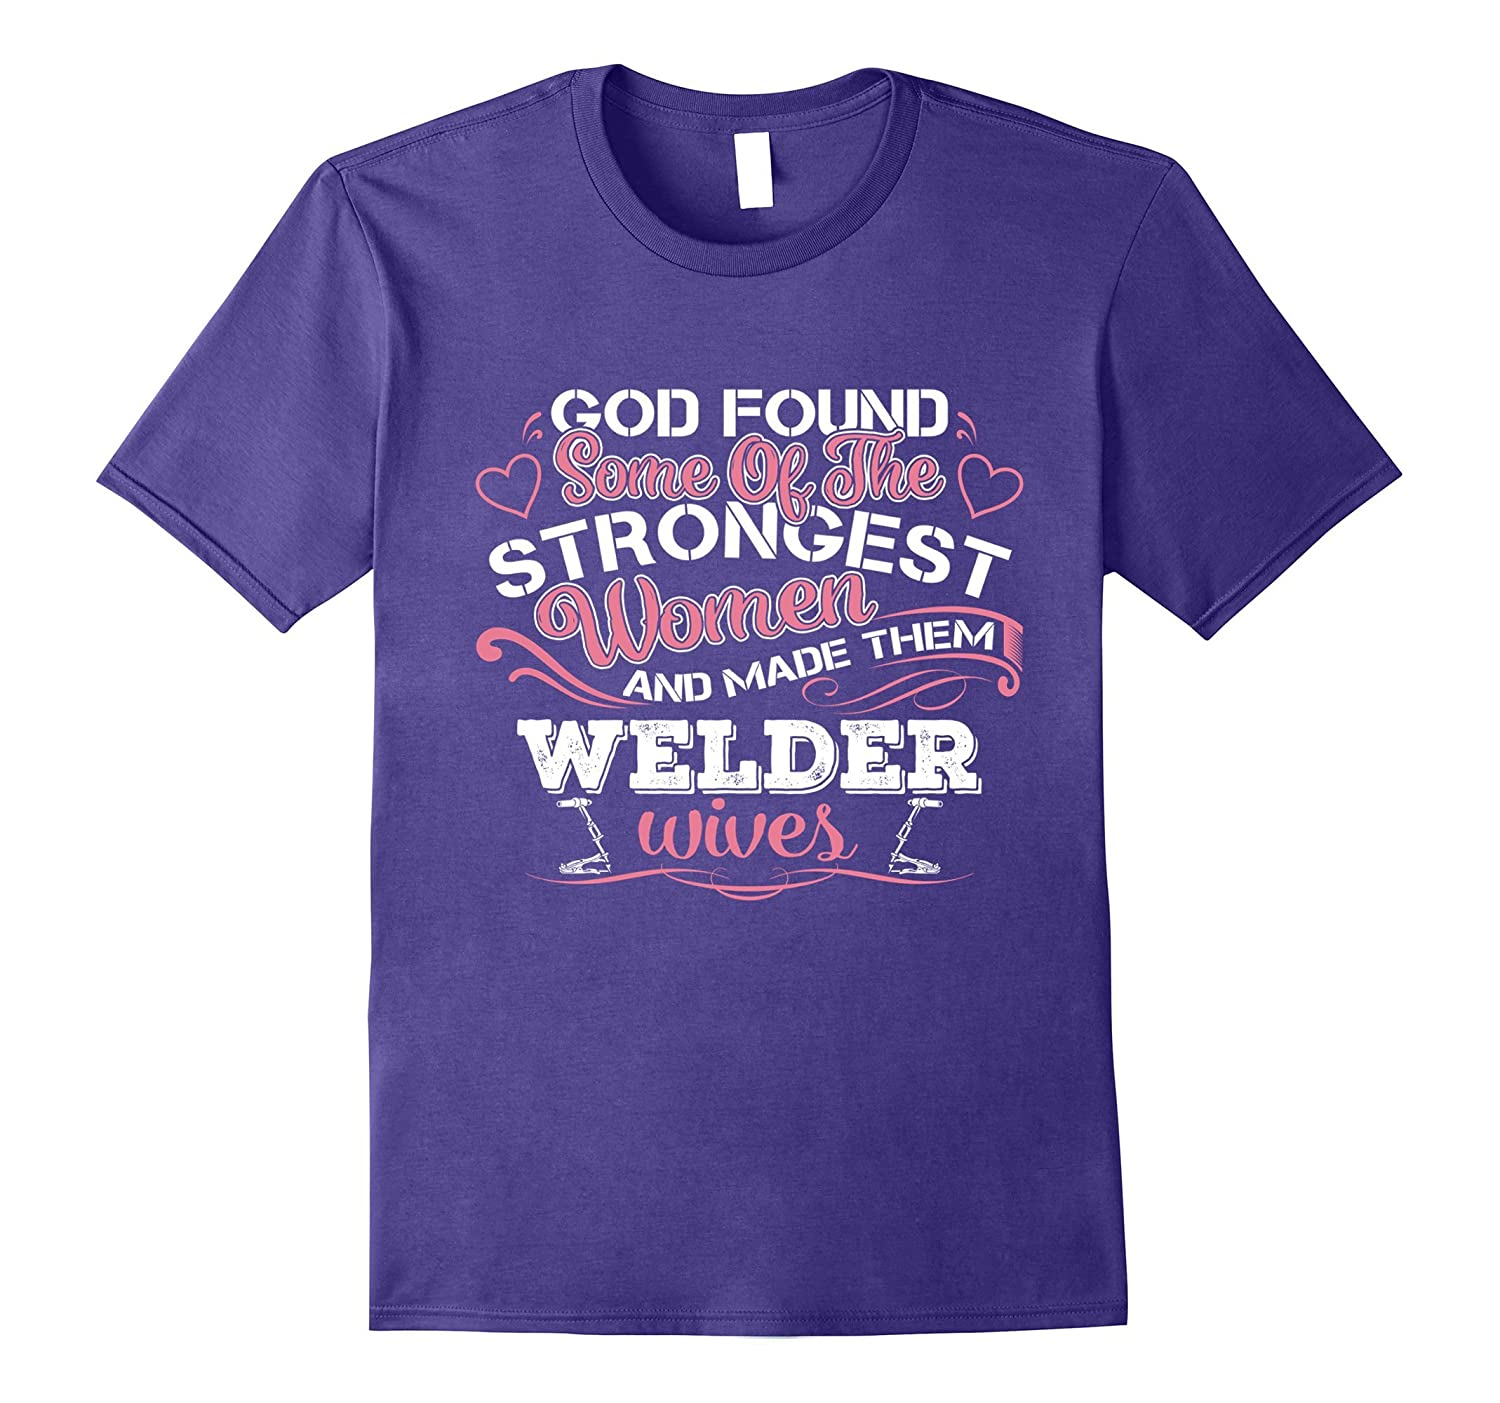 Women And Made Them Welder Wives T-Shirt-TH